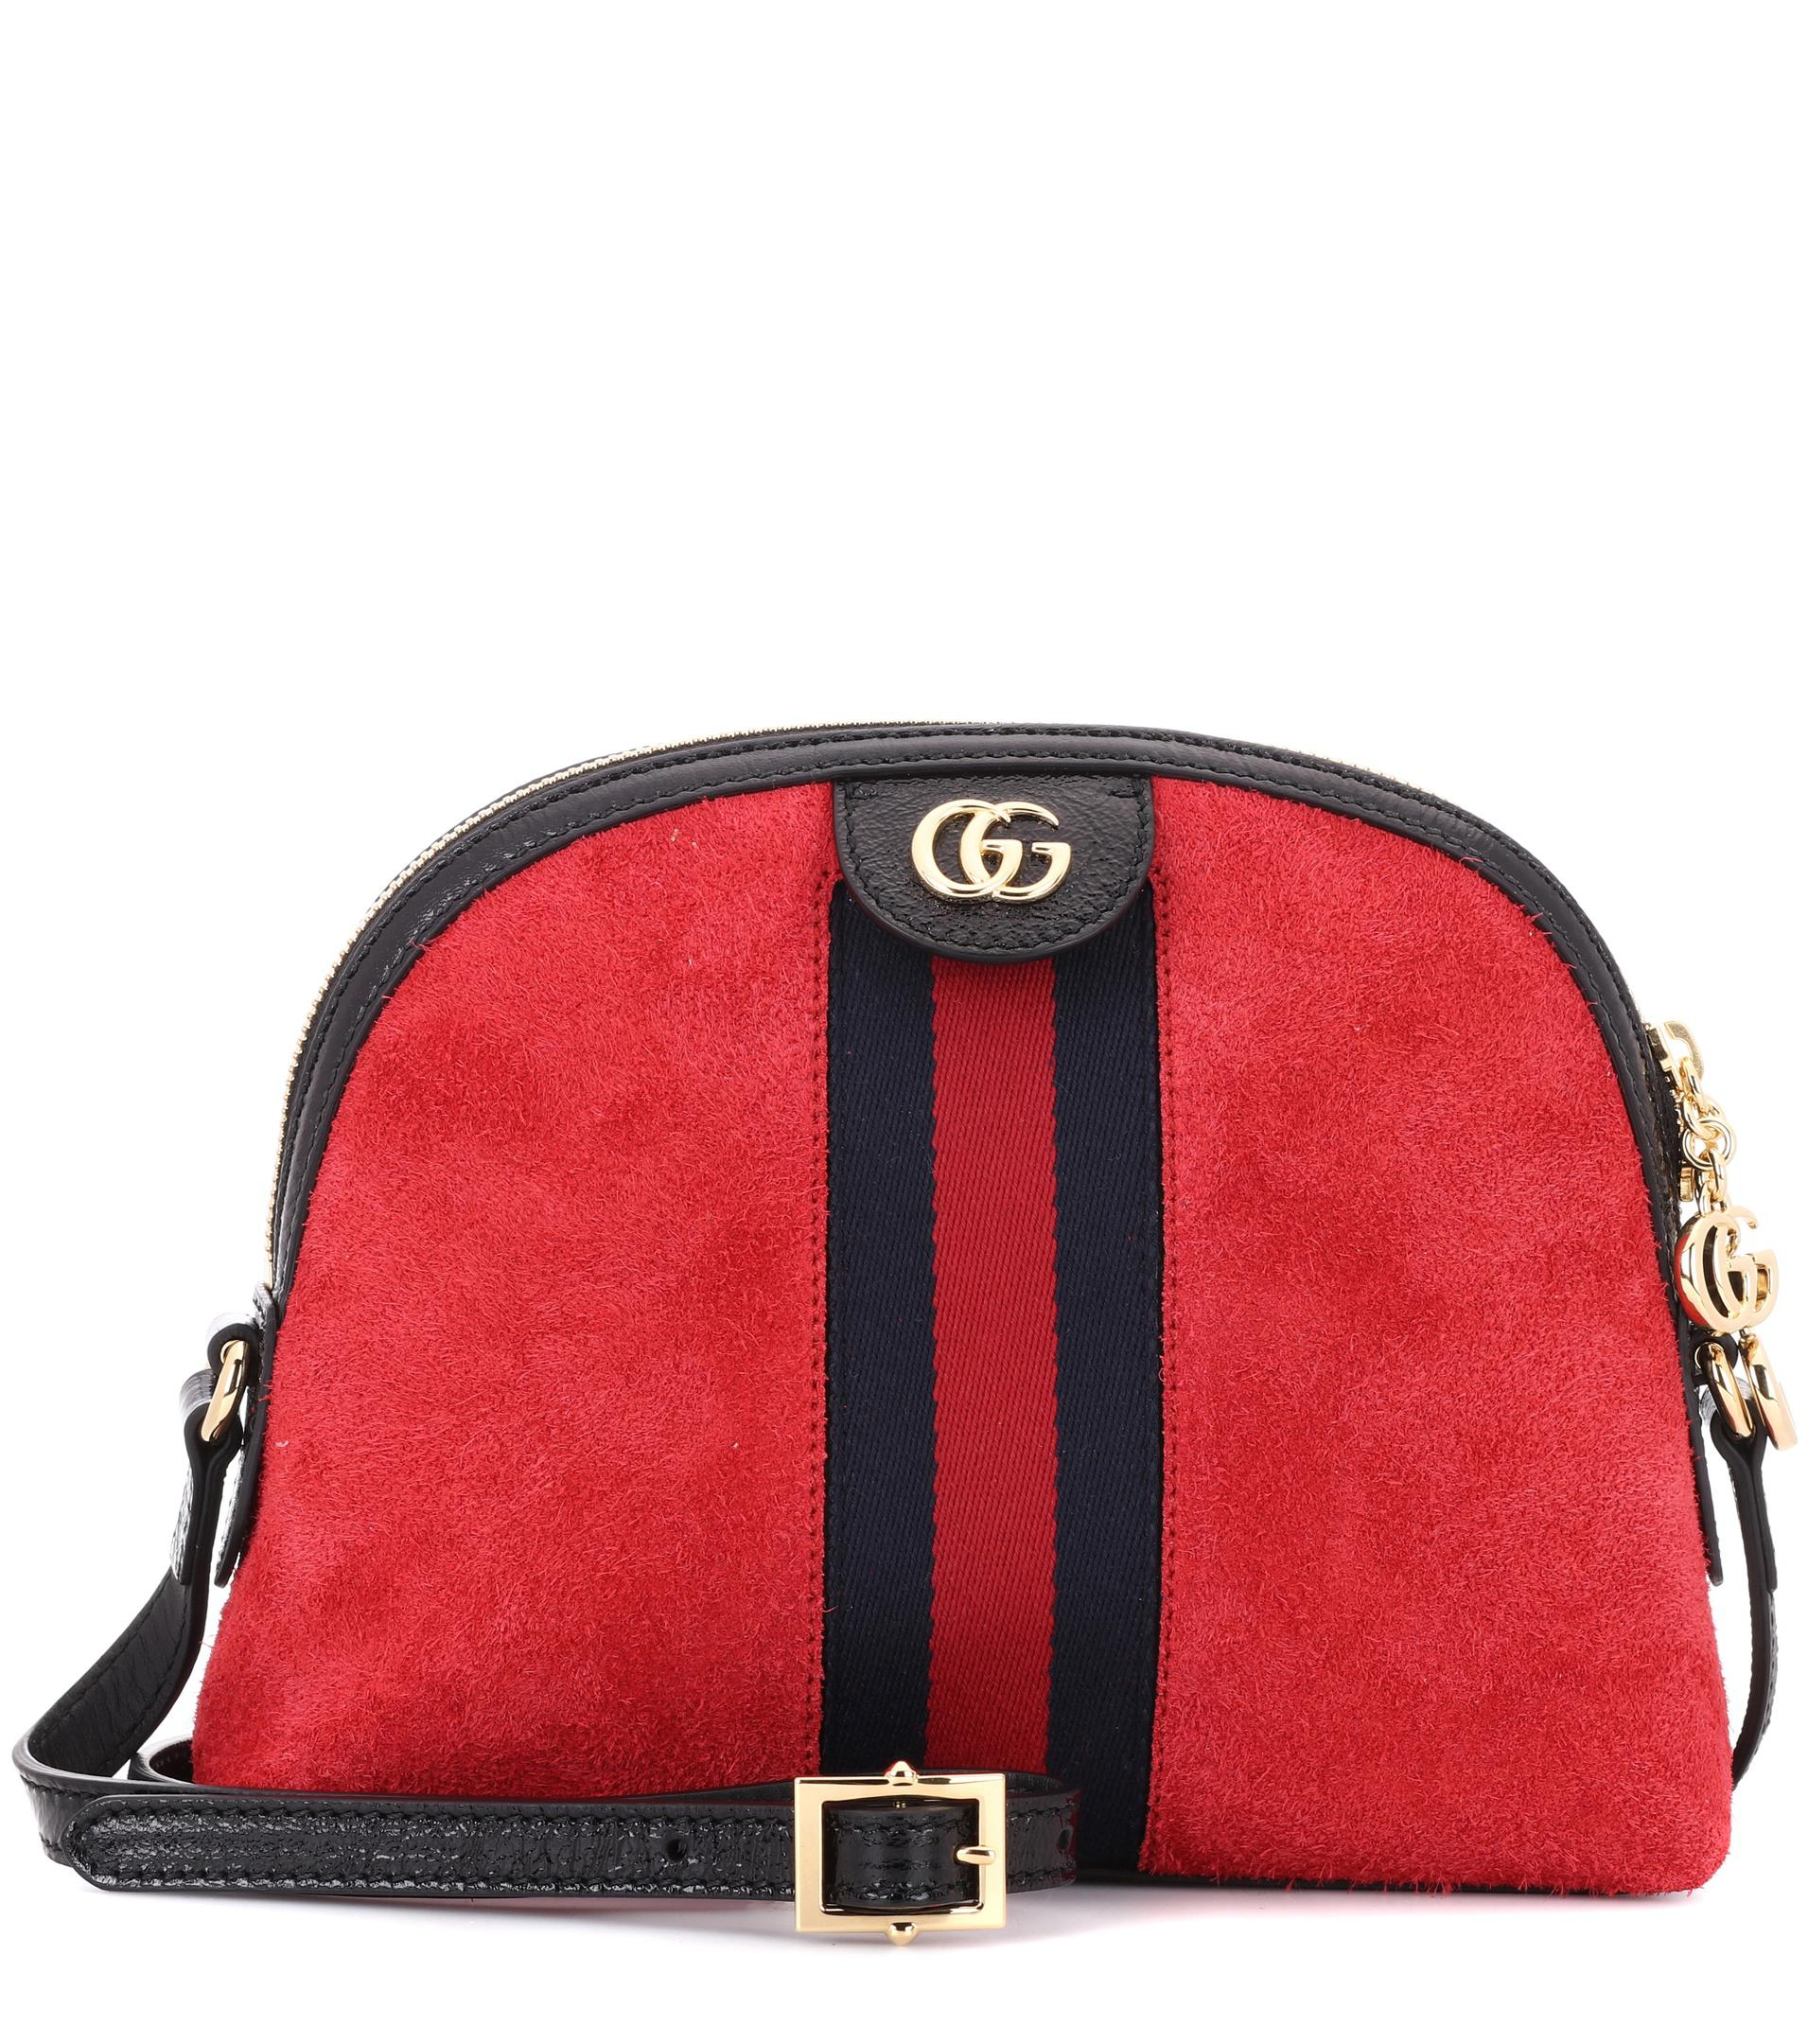 7e50fdc642cf66 Gucci Ophidia Suede Crossbody Bag in Red - Lyst